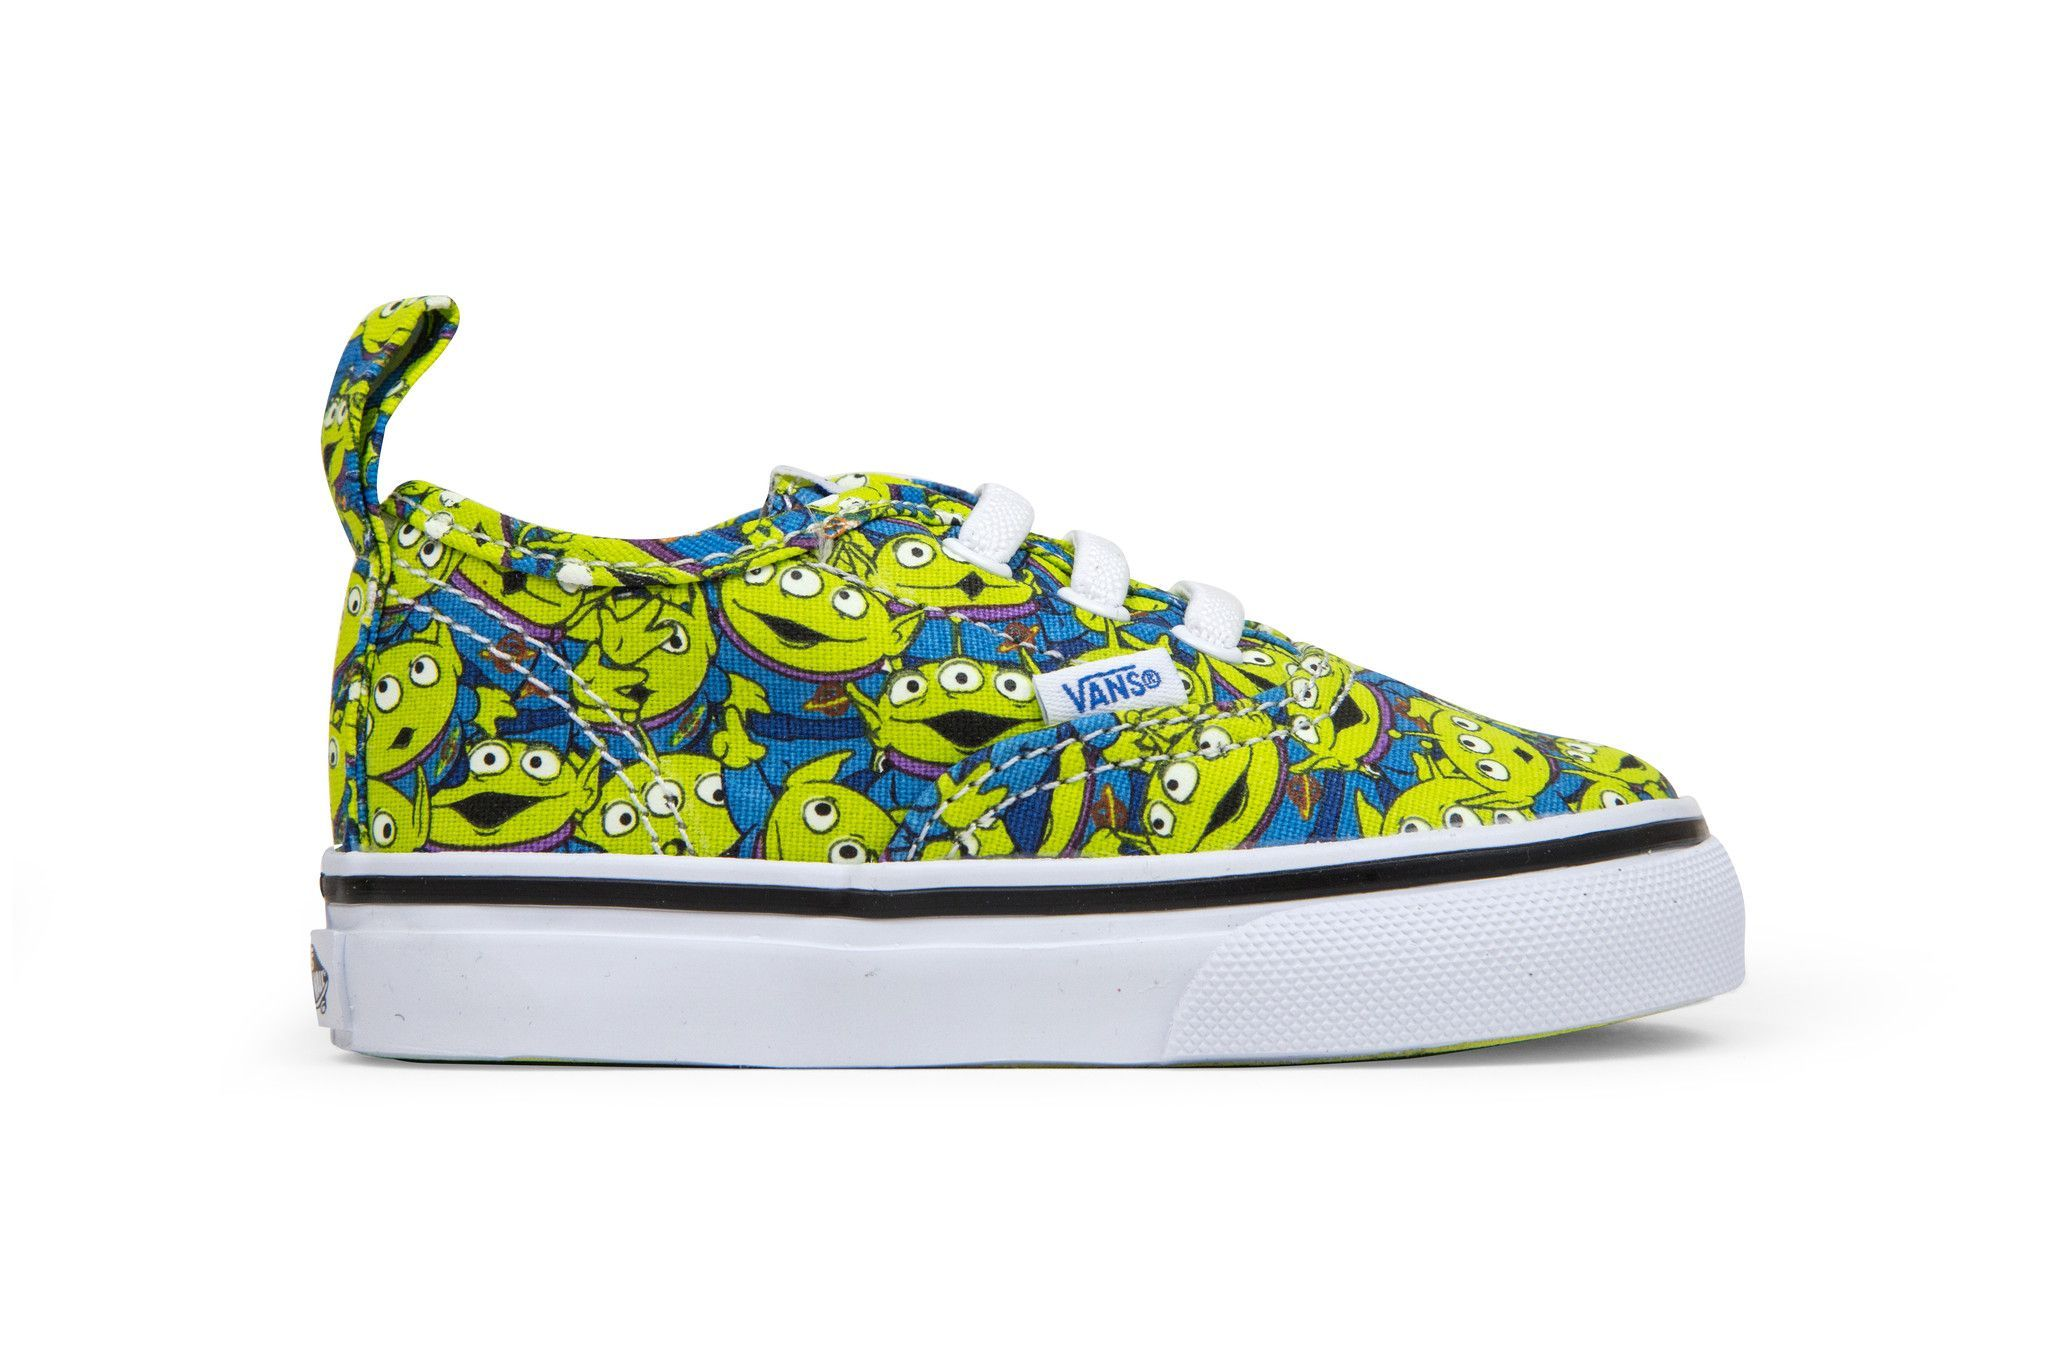 c09c77c443 Vans x Toy Story Toddler Authentic V Lace - Aliens True White ...